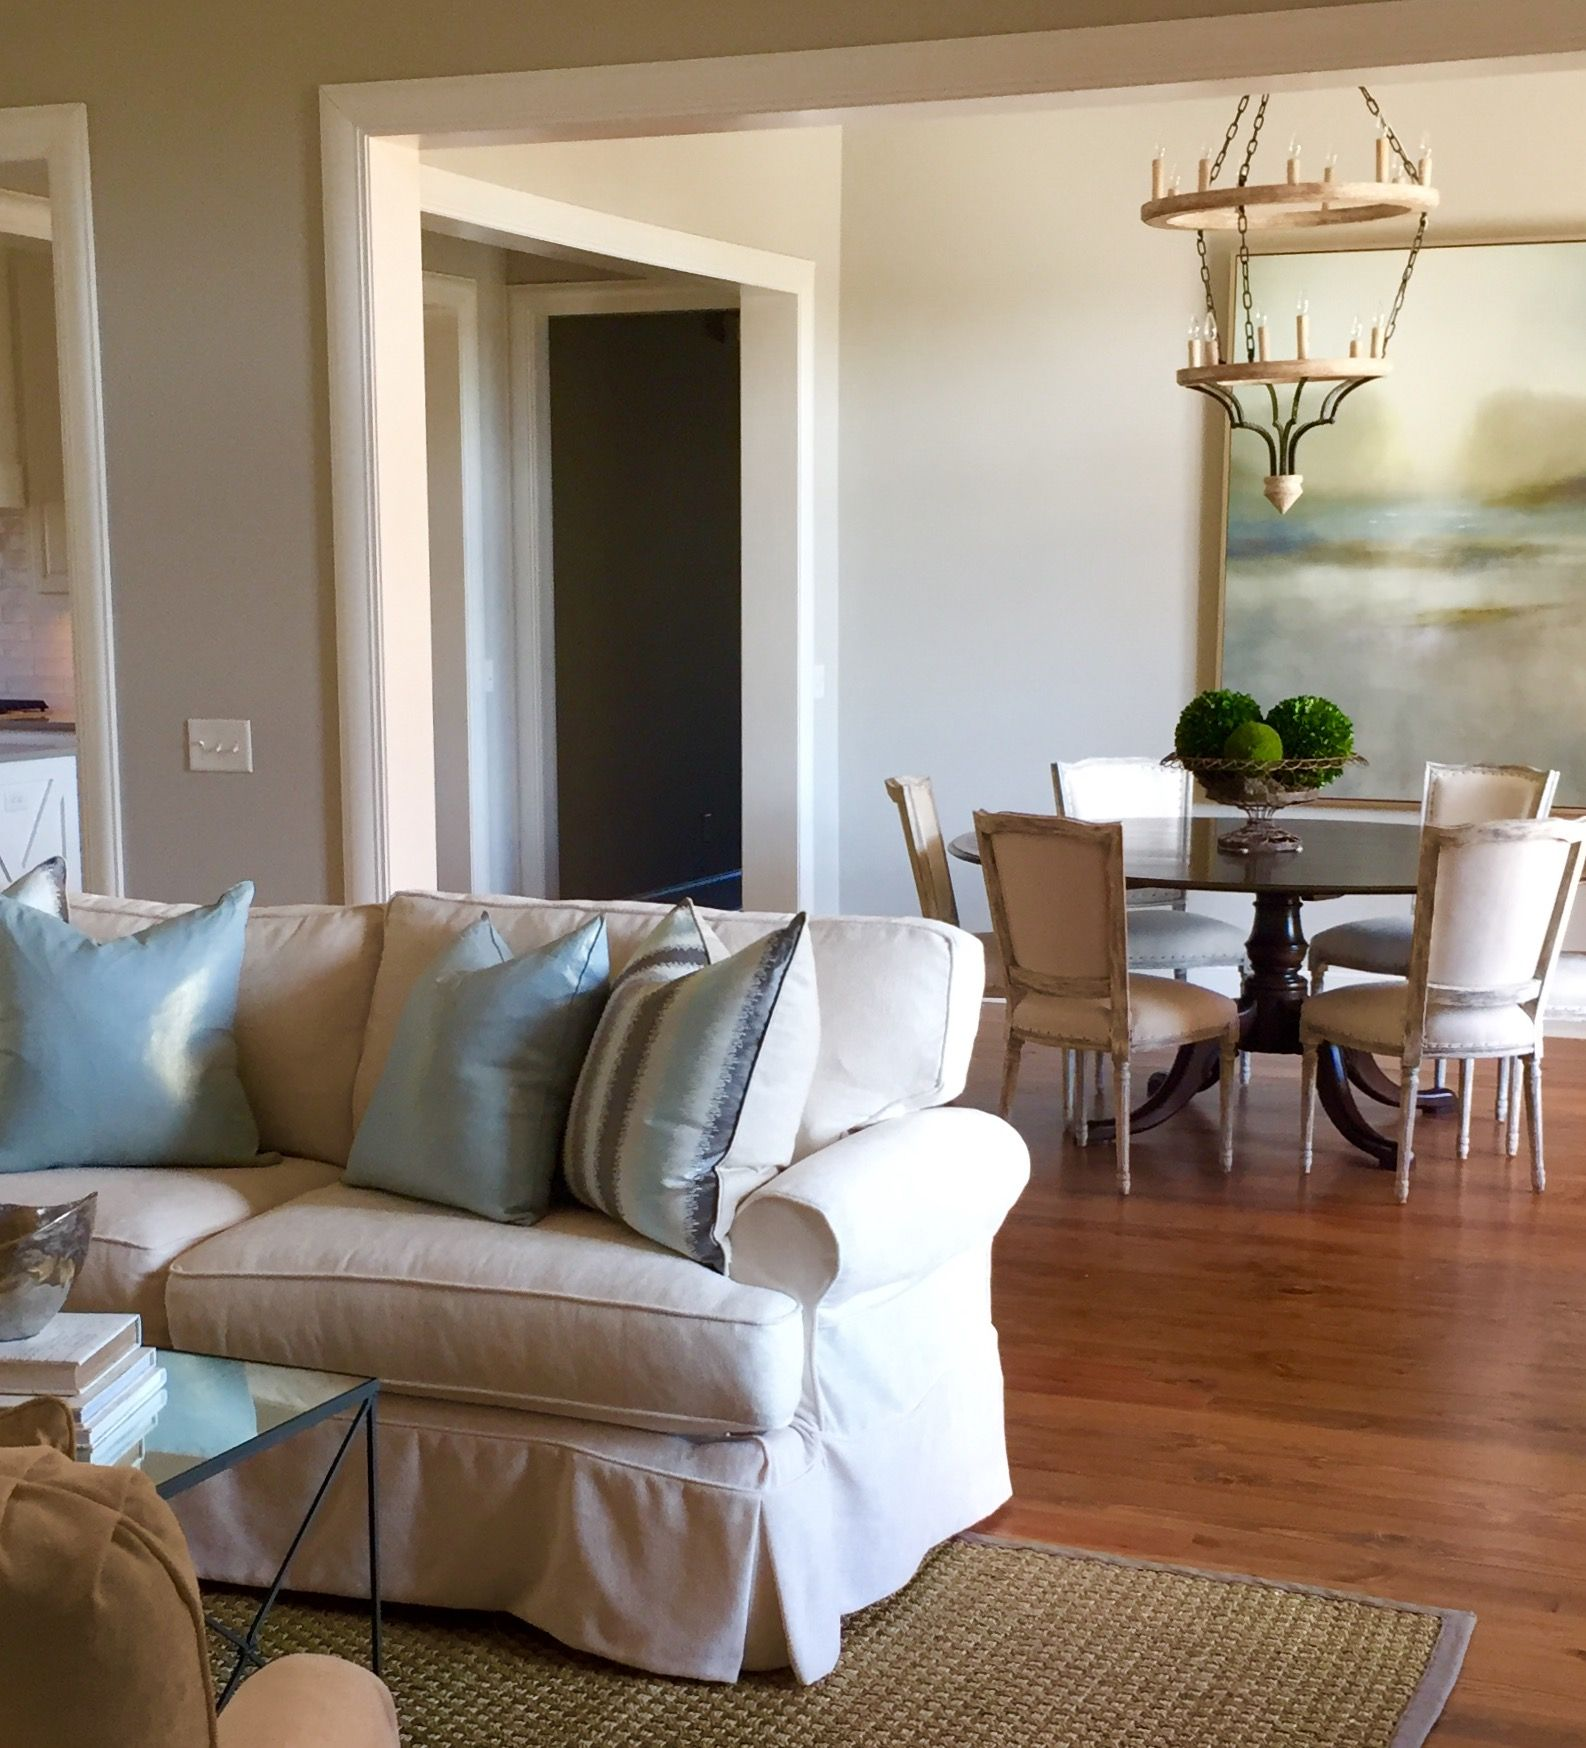 Interior Design Home Staging: Image By ASJ Interiors & Home Staging On Saddlebrook